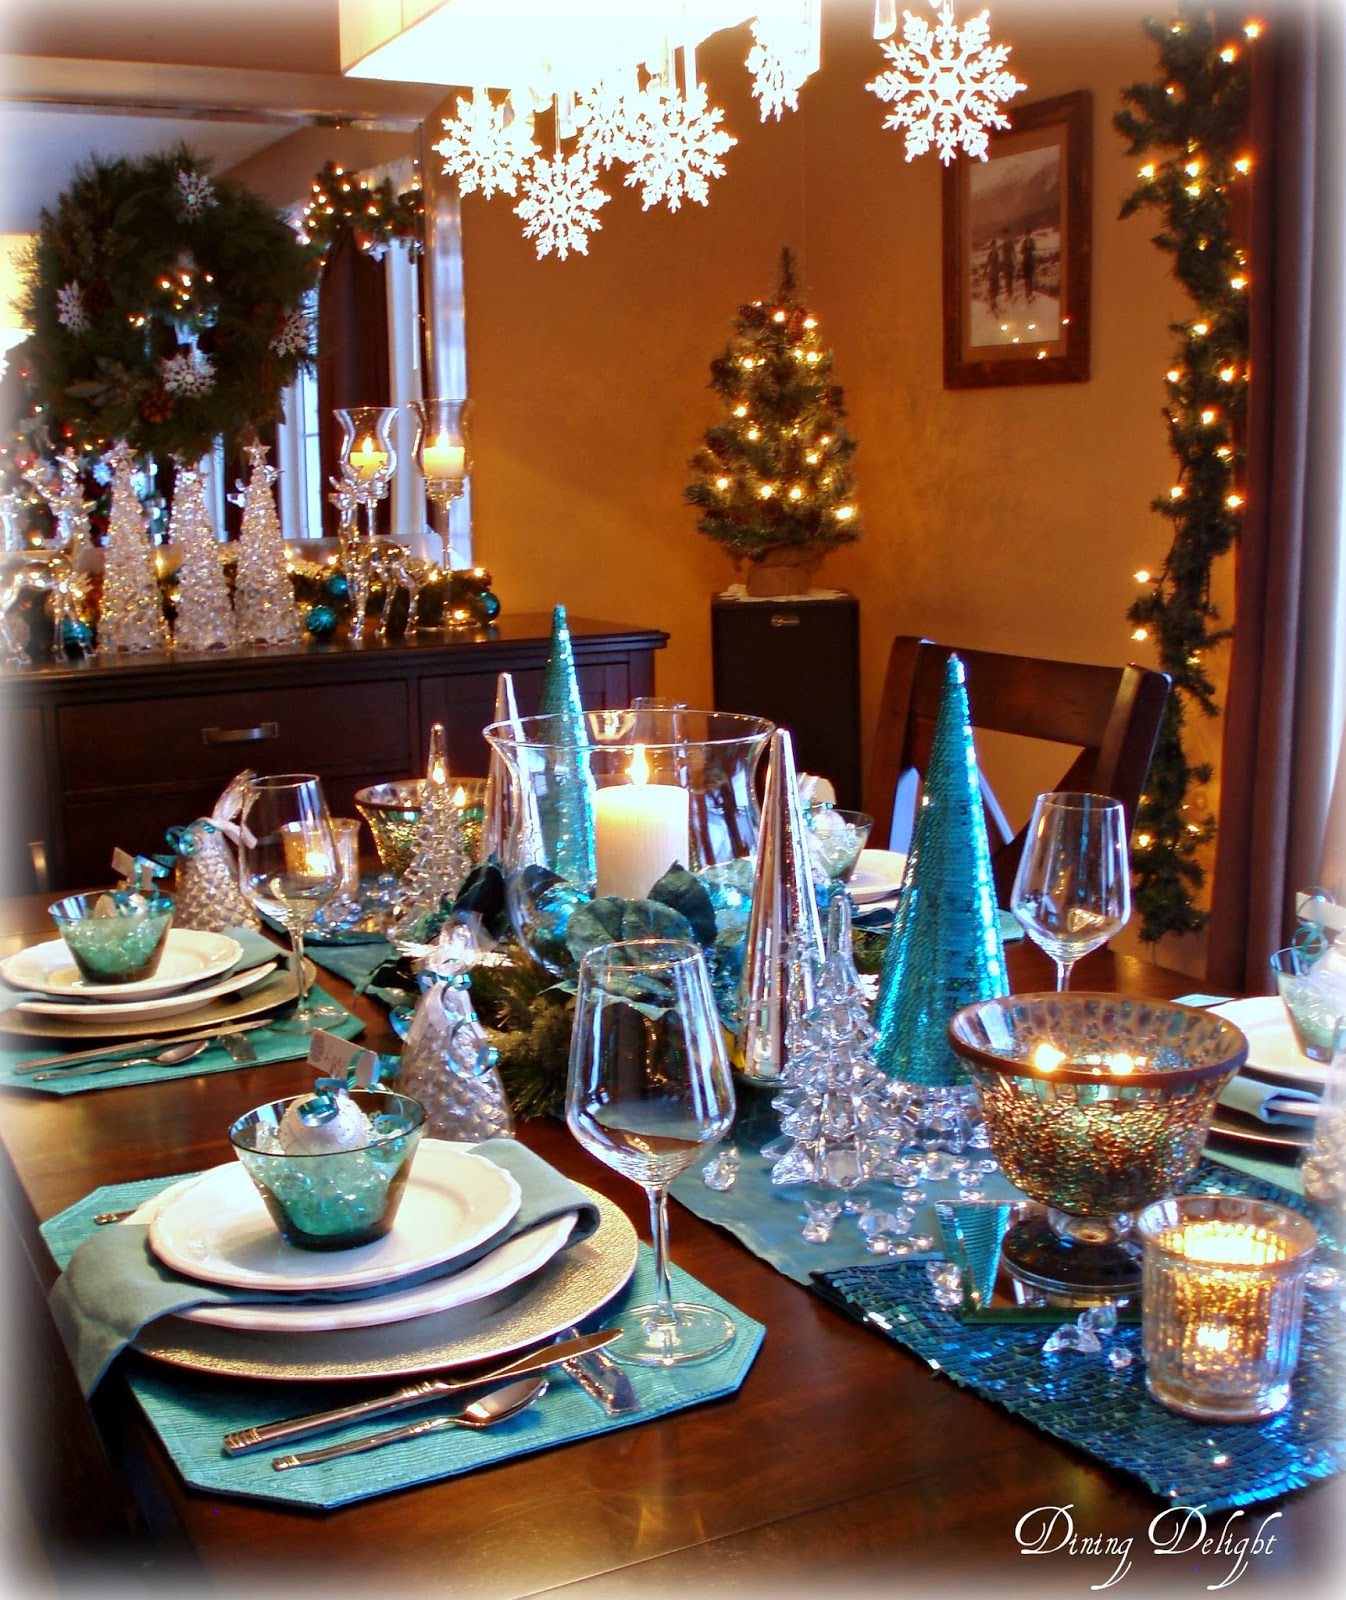 Dining Delight Christmas In Teal Blue